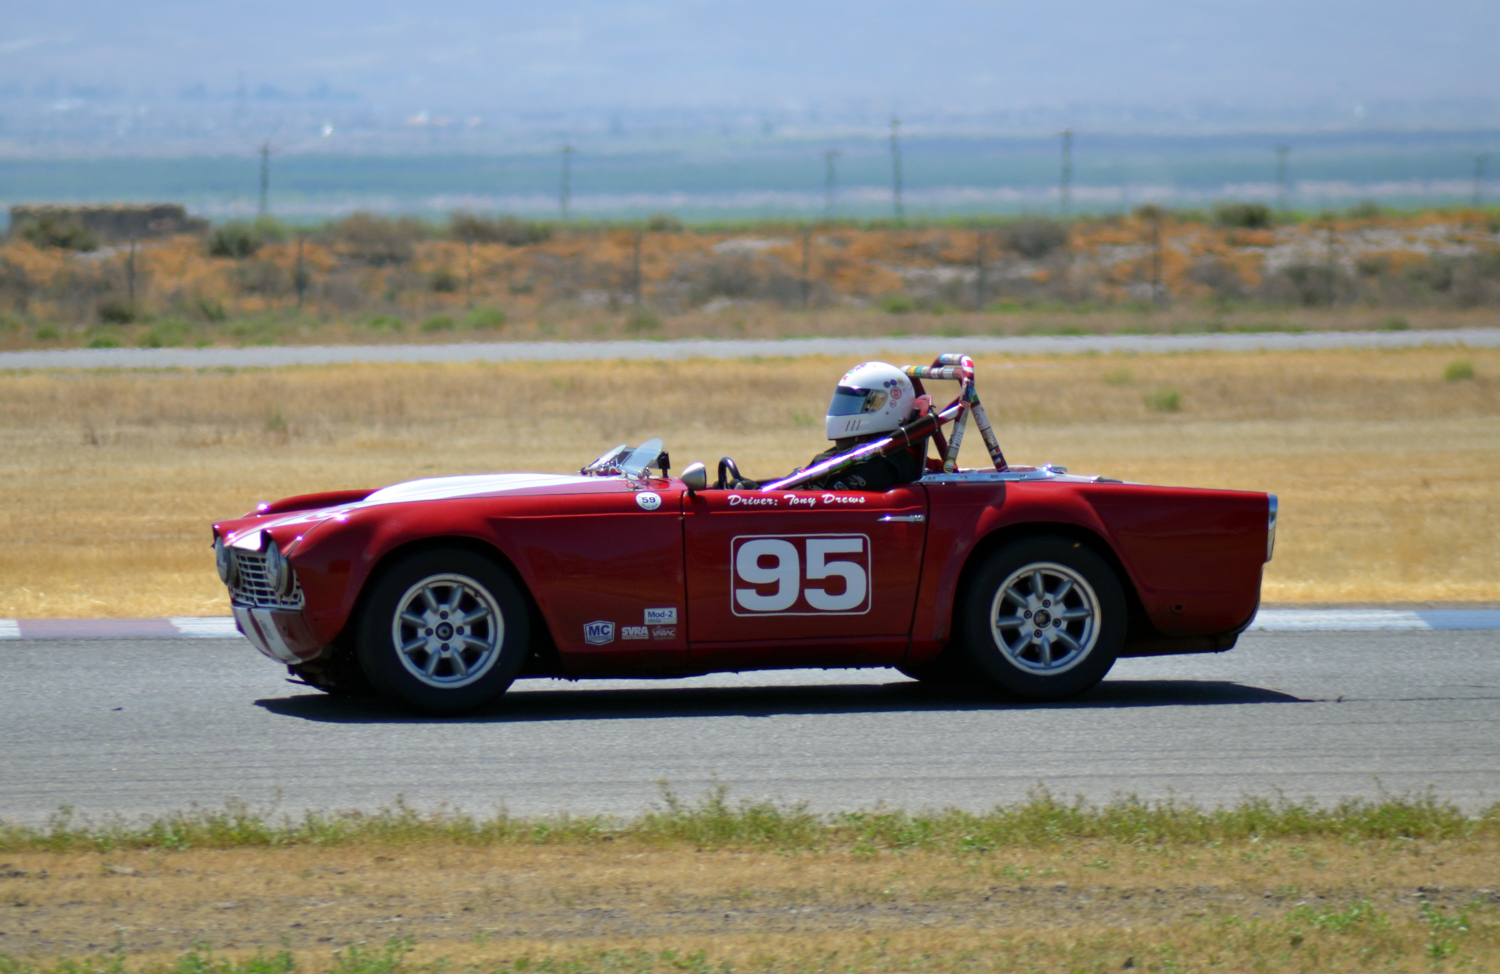 #95 Tony Drews, 1963 TR4, Best Lap: 2:13.889